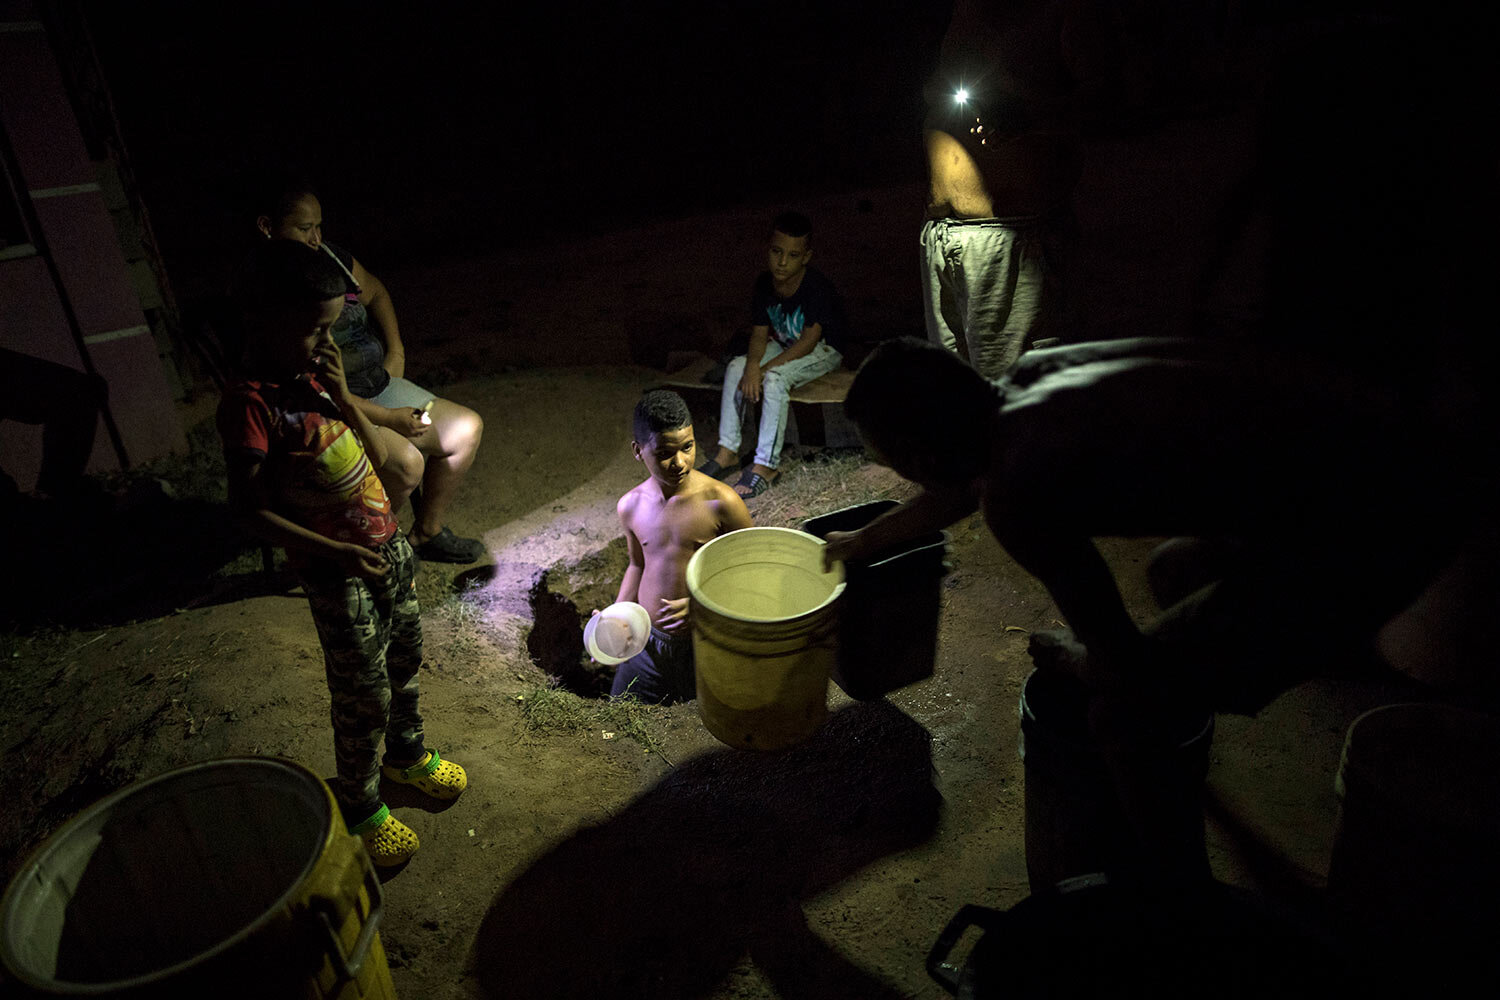 A youth draws water from a well that was created on the roadside by locals looking to resolve the lack of running water and electricity in Cabimas, Venezuela, July 12, 2019. (AP Photo/Rodrigo Abd)